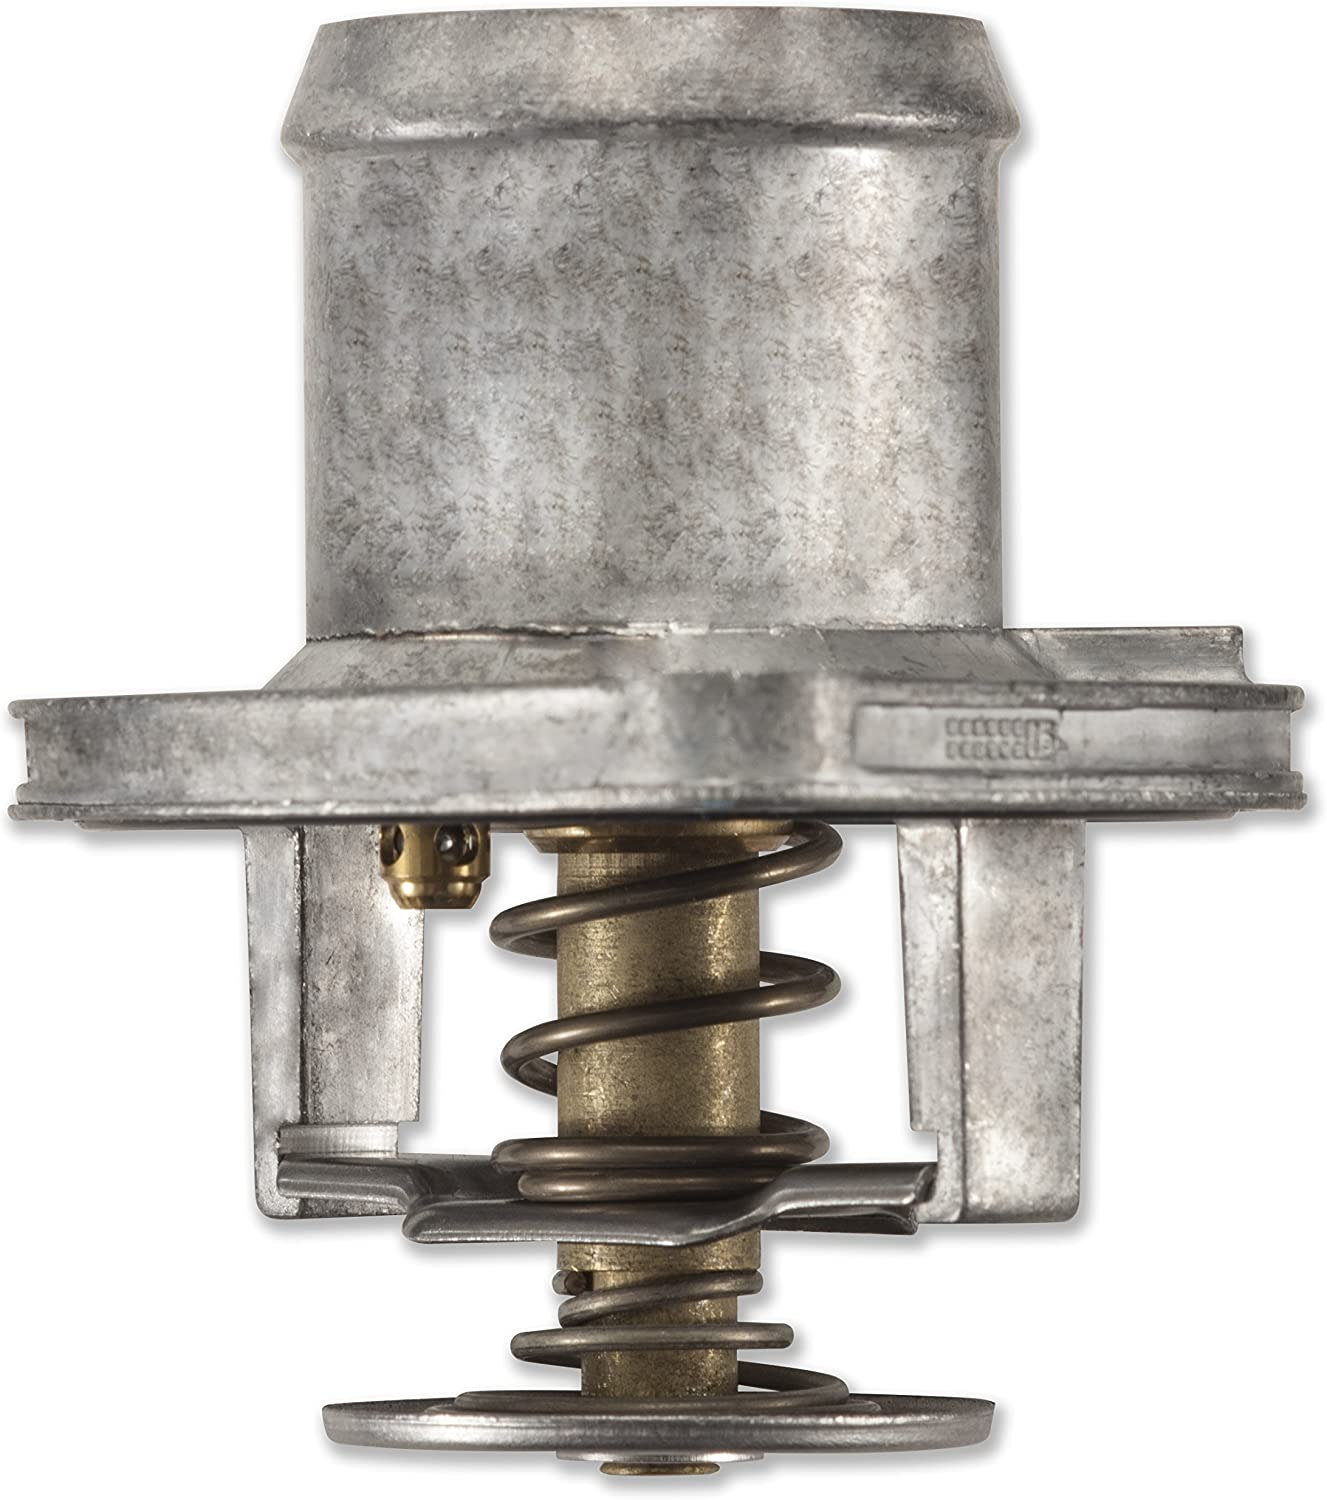 Alliant Power# AP63496 OEM# 3C3Z8575AA Thermostat for the 2003-2010 6.0L Power Stroke Engine